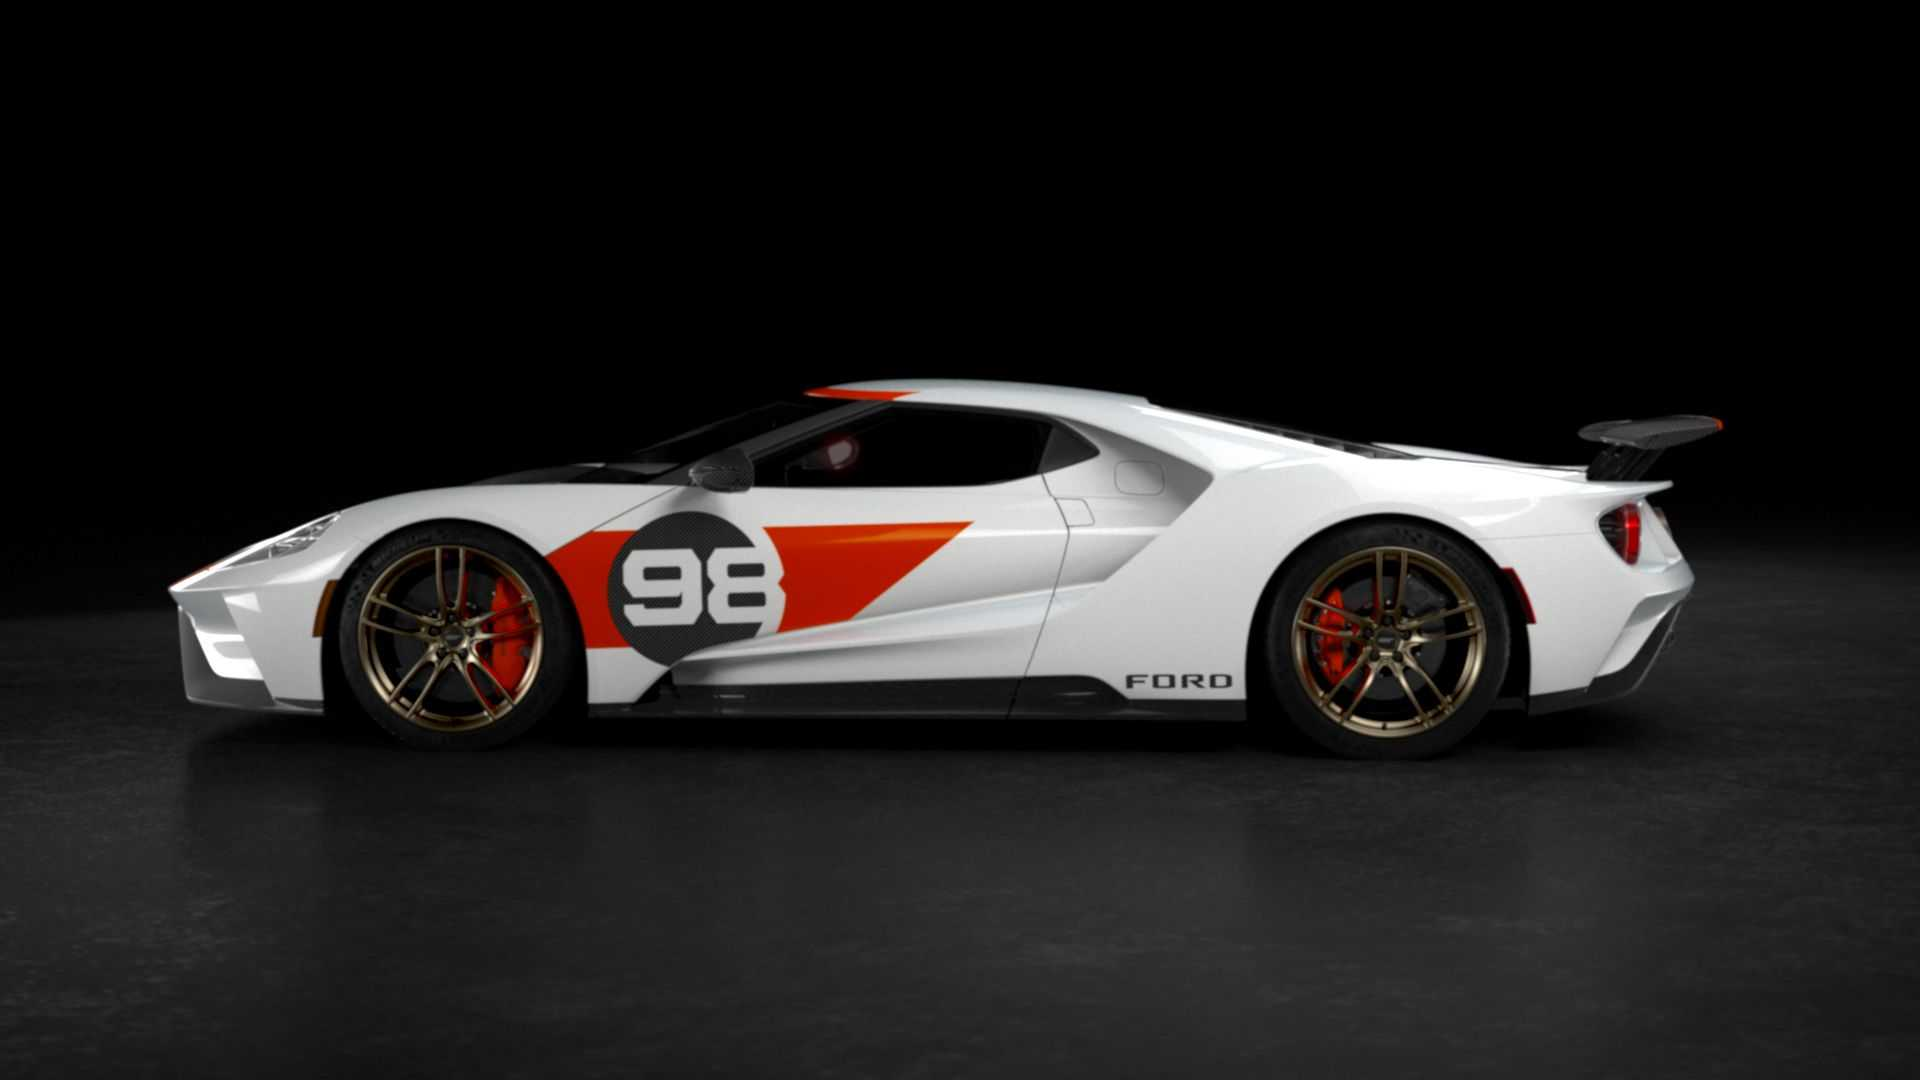 2021-ford-gt-heritage-edition-side-profile.jpg